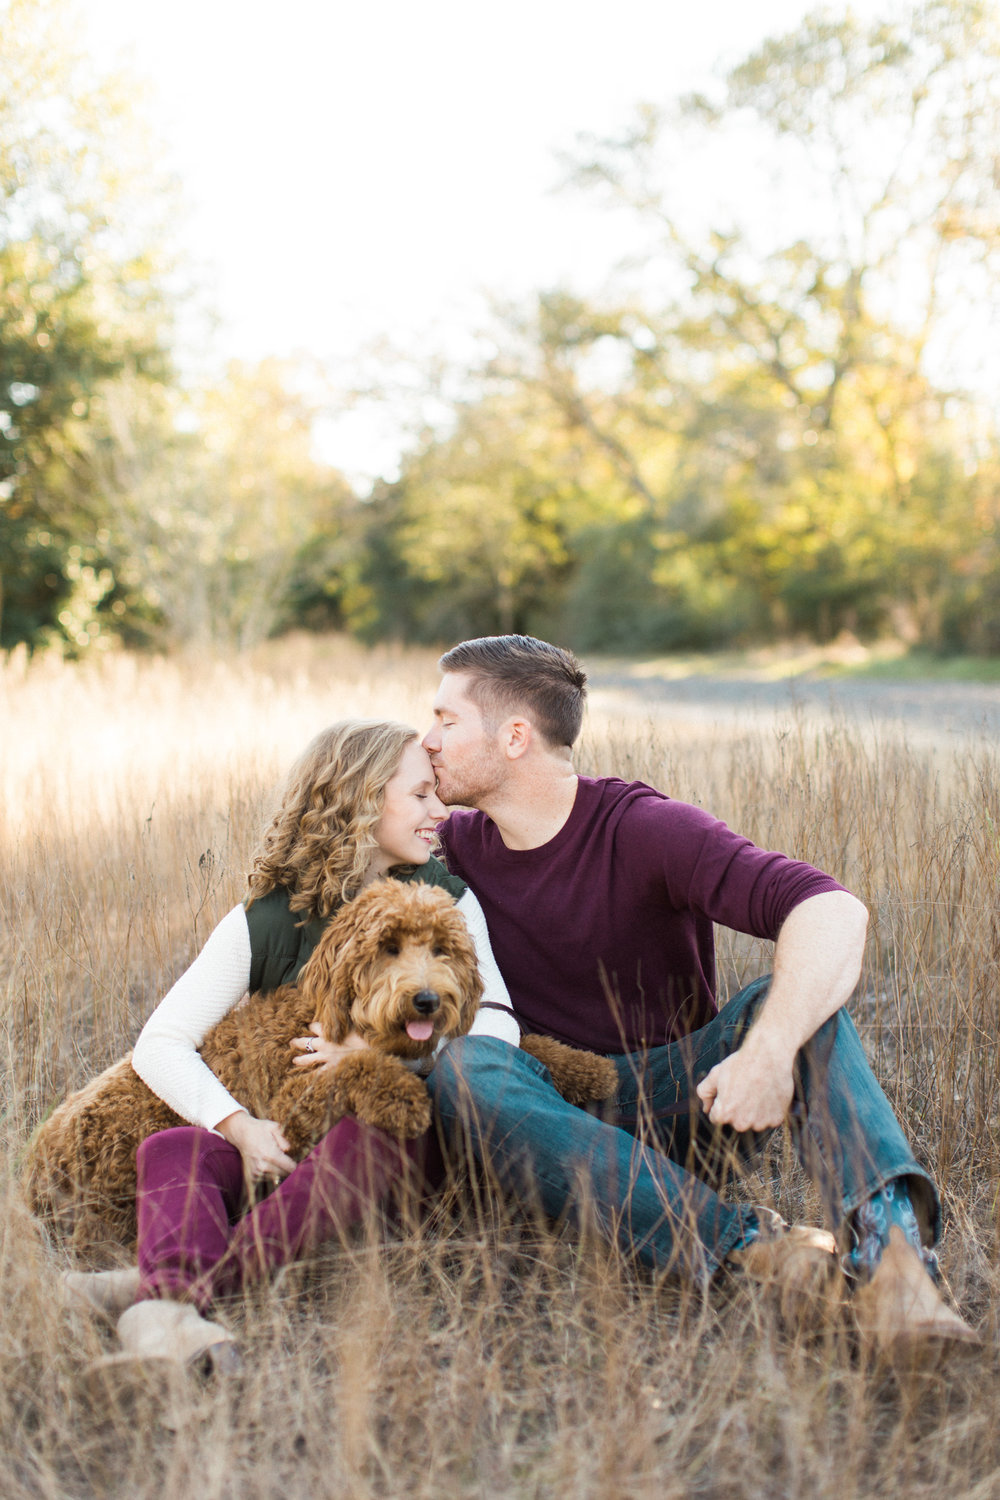 09b62-collegestationengagementsession-4.jpg